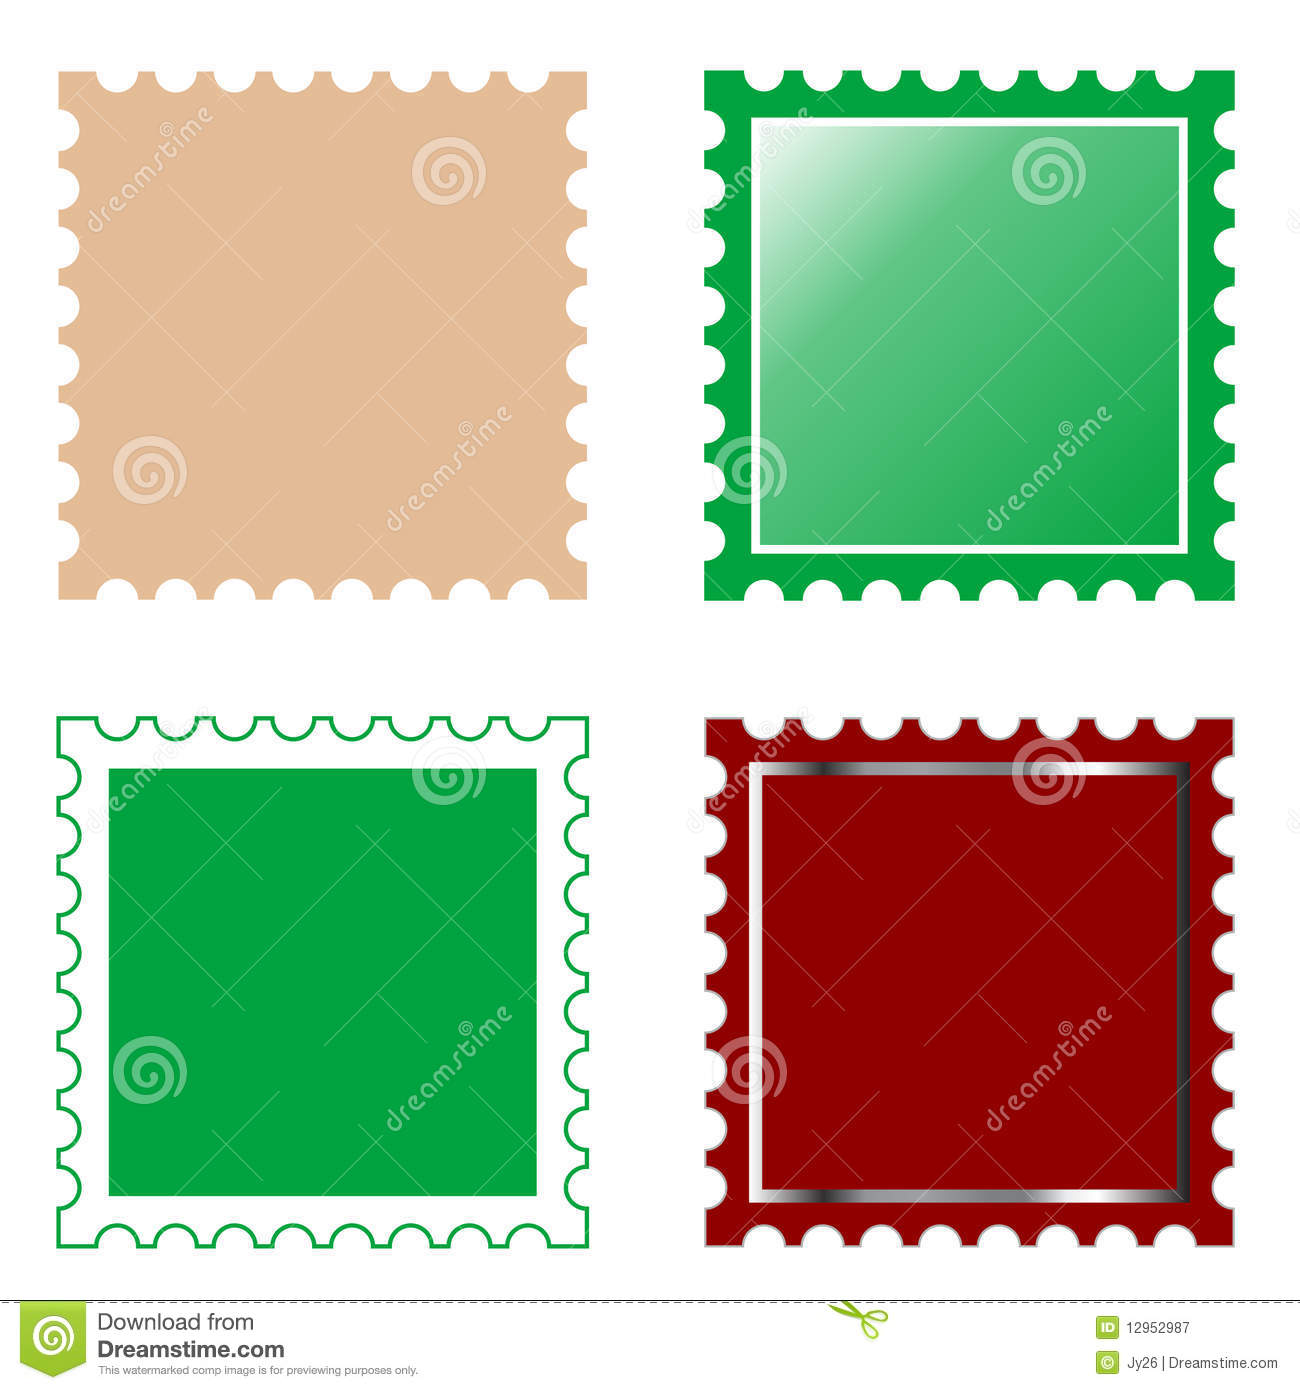 Vector Square Postage Stamp Stock Vector - Illustration ...